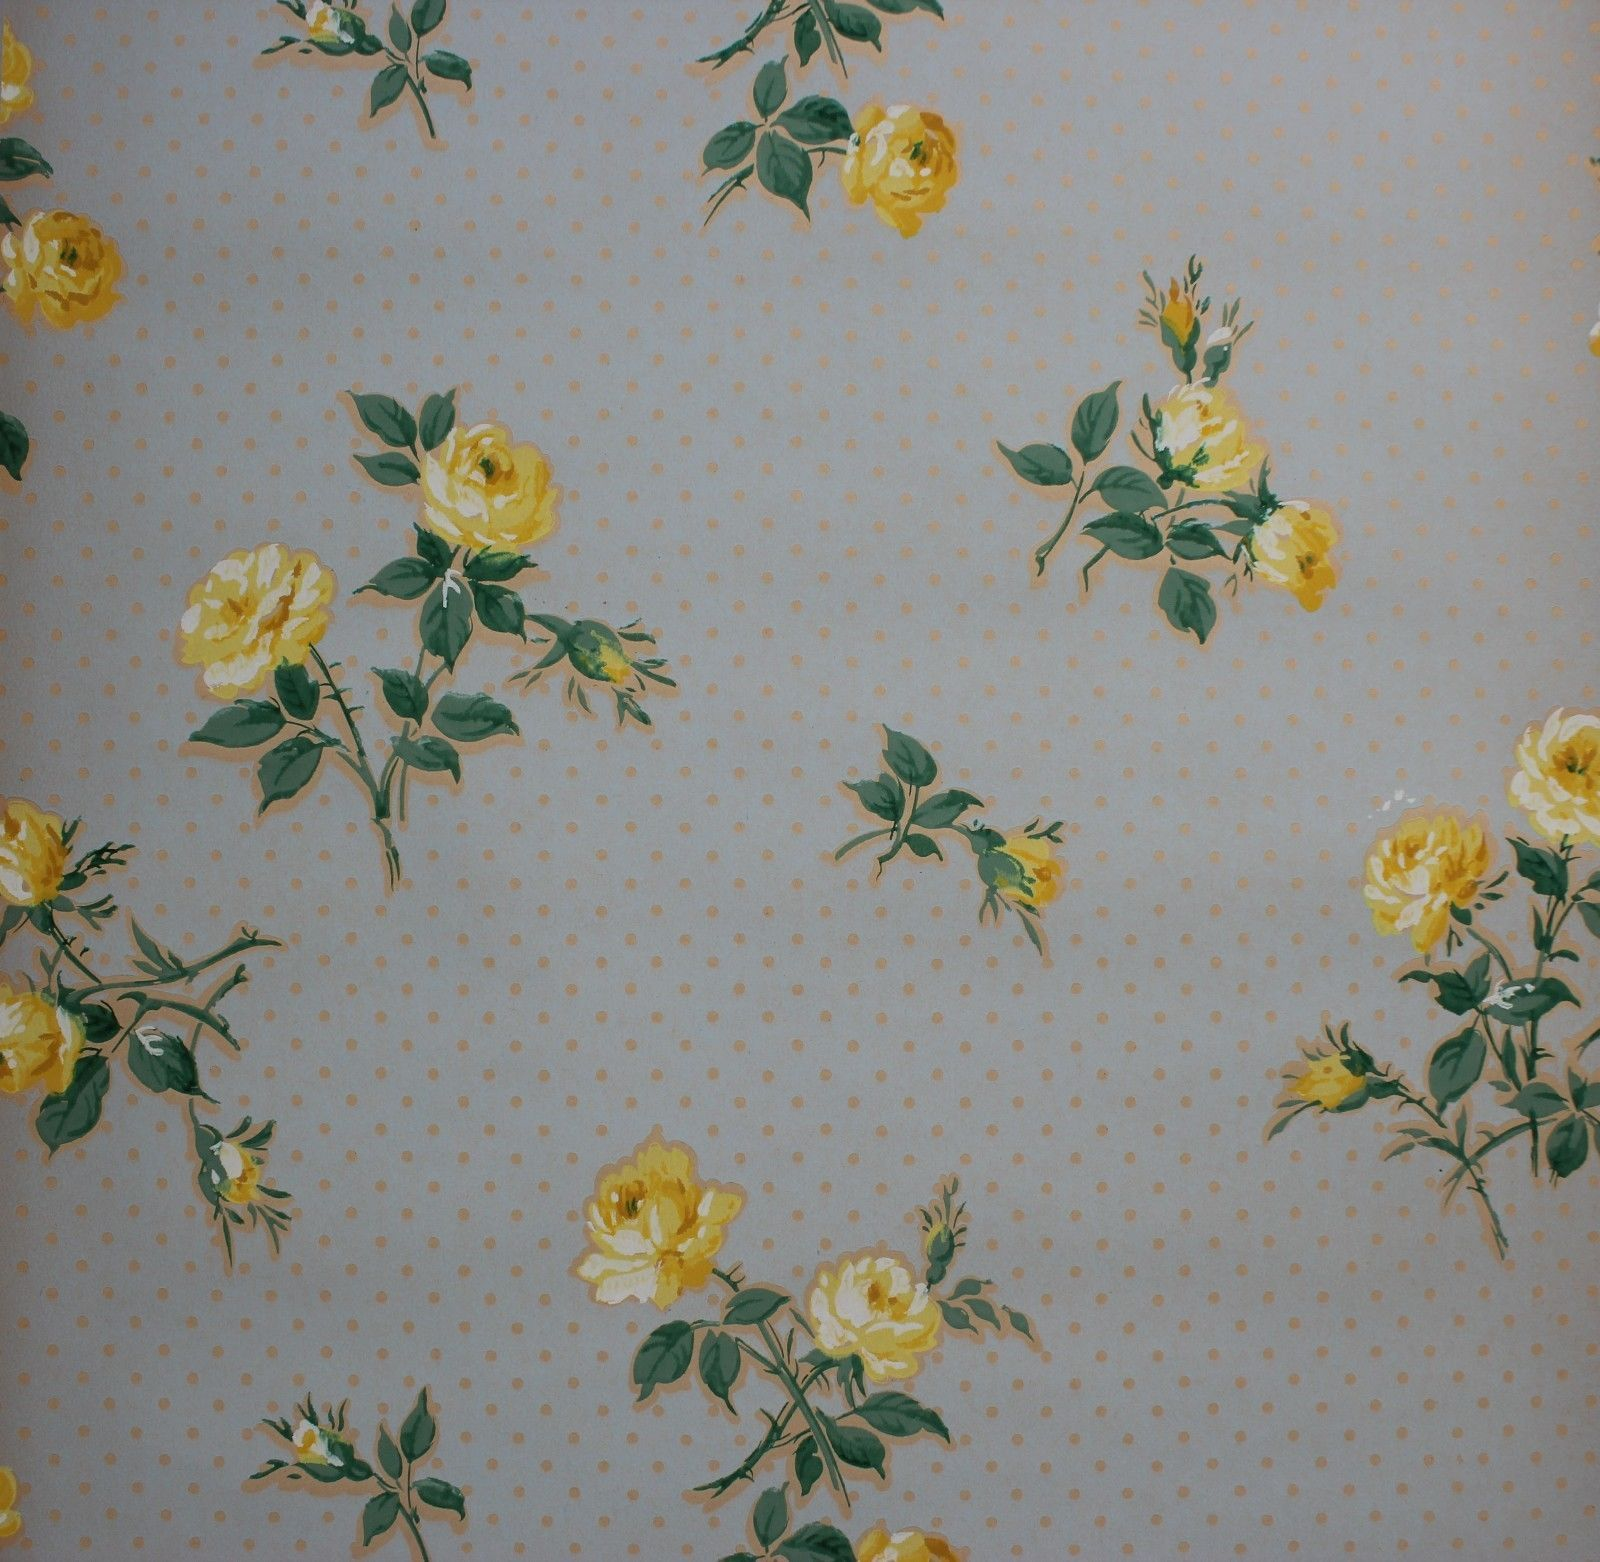 Details About Vintage Wallpaper 1930 S Yellow Roses On Blue